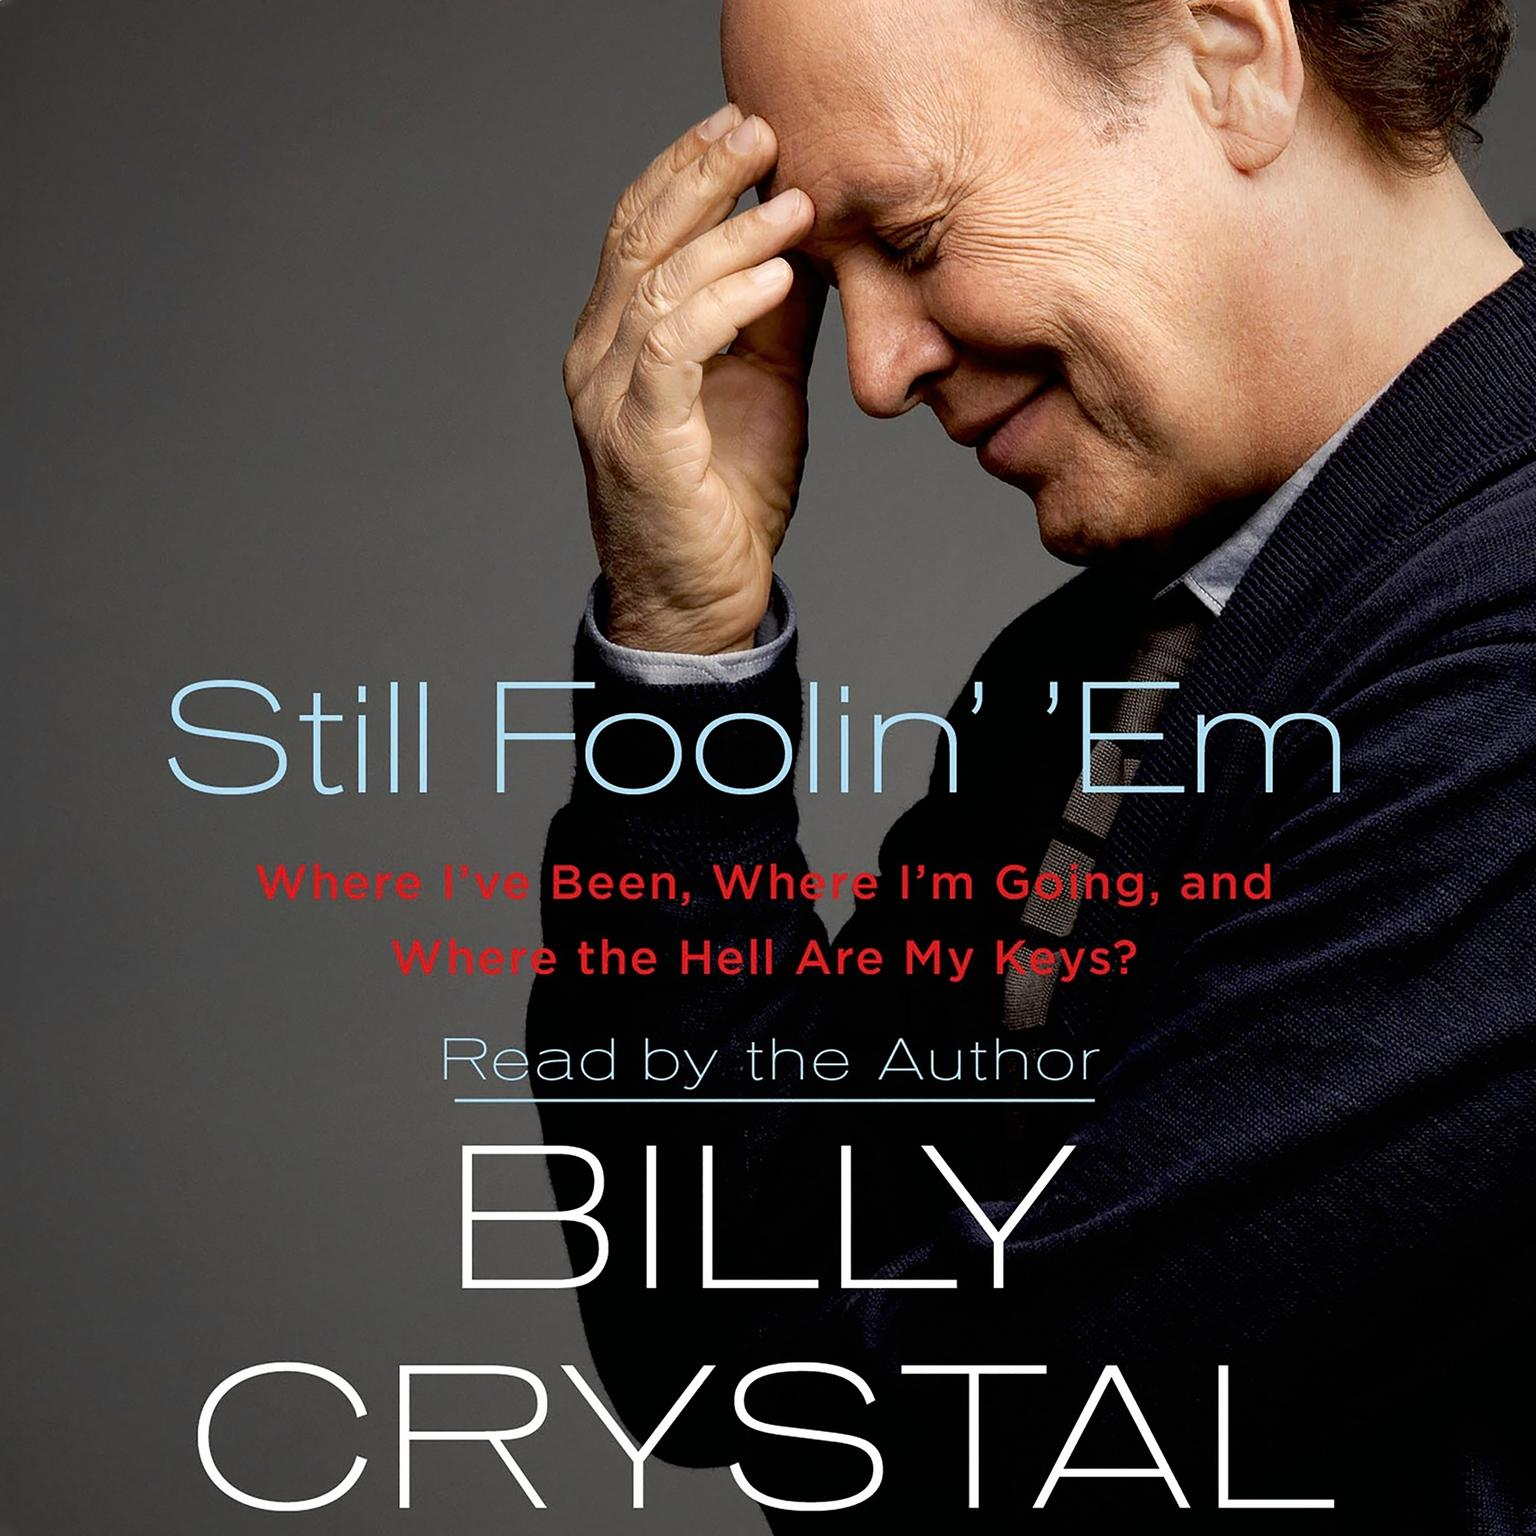 Printable Still Foolin' 'Em: Where I've Been, Where I'm Going, and Where the Hell Are My Keys Audiobook Cover Art